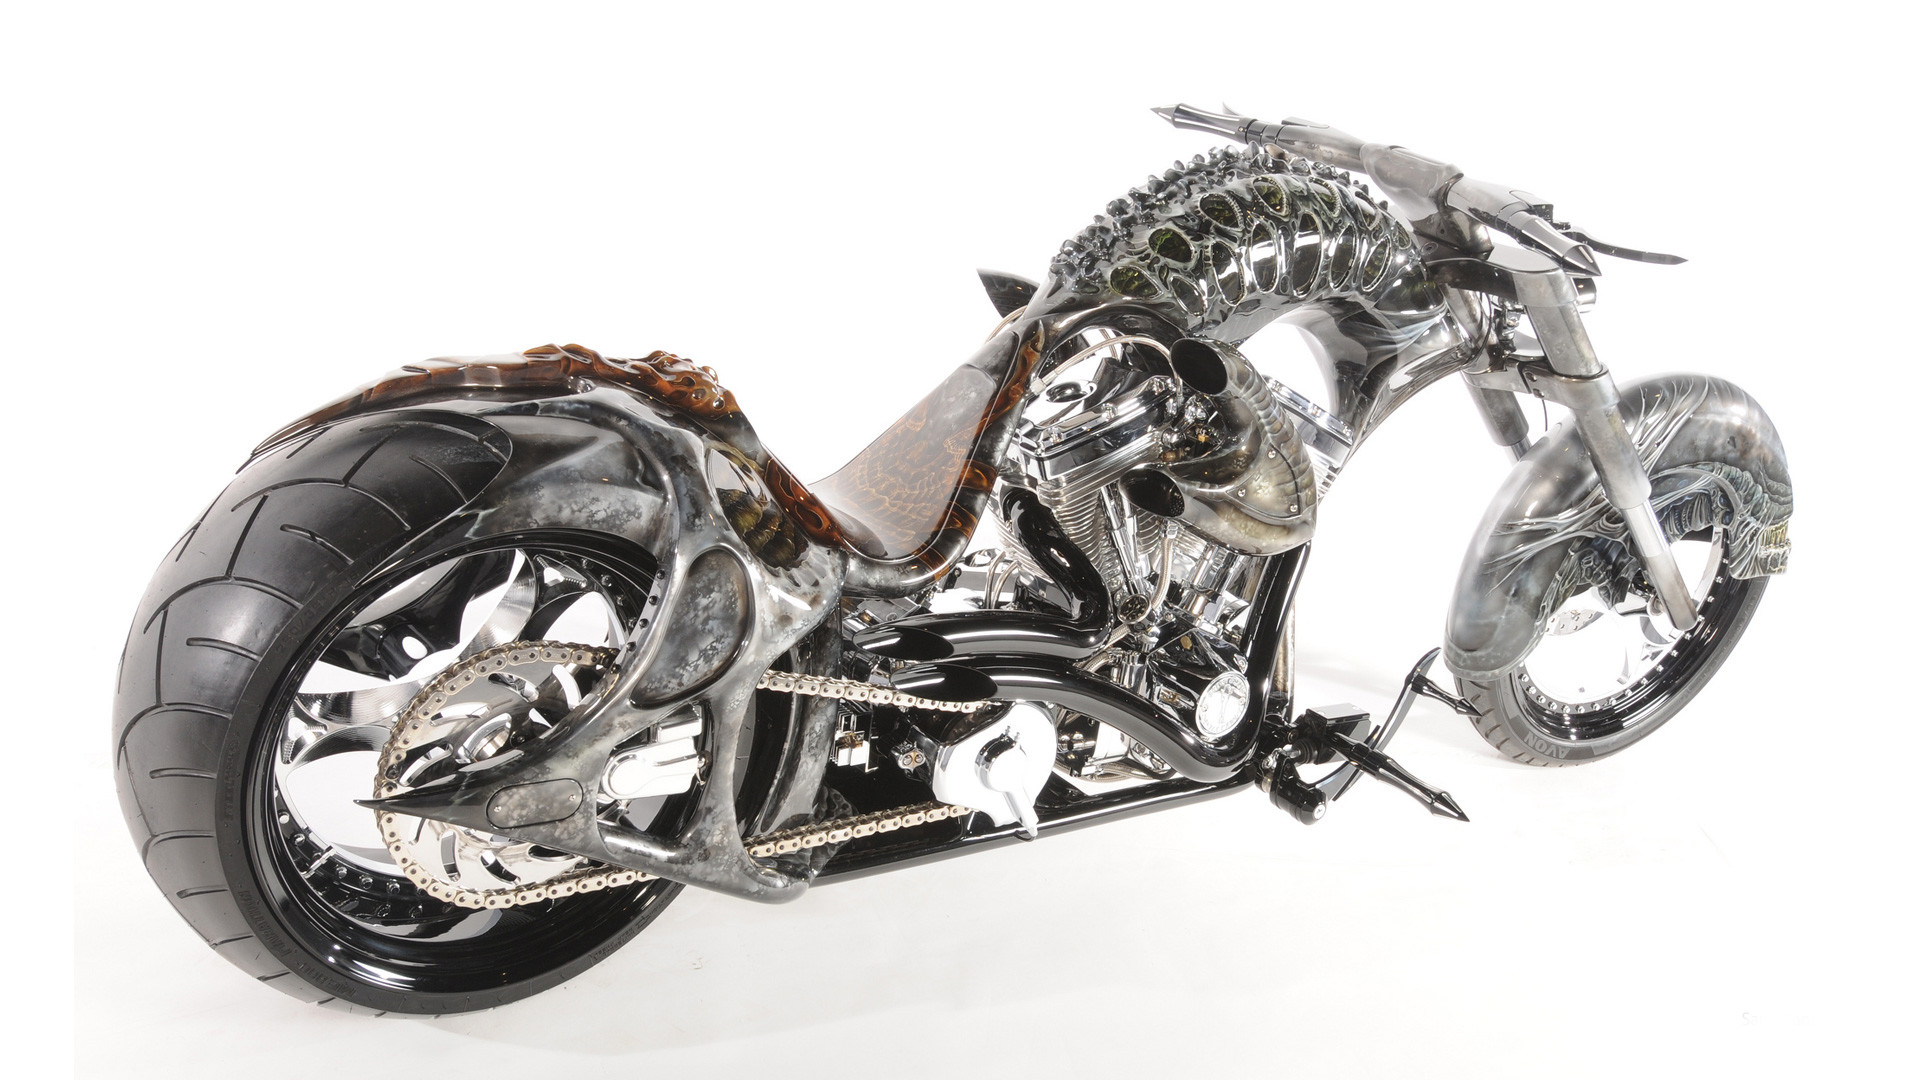 1920x1080 ... motos chopper custom - Buscar con Google | Motor | Pinterest .